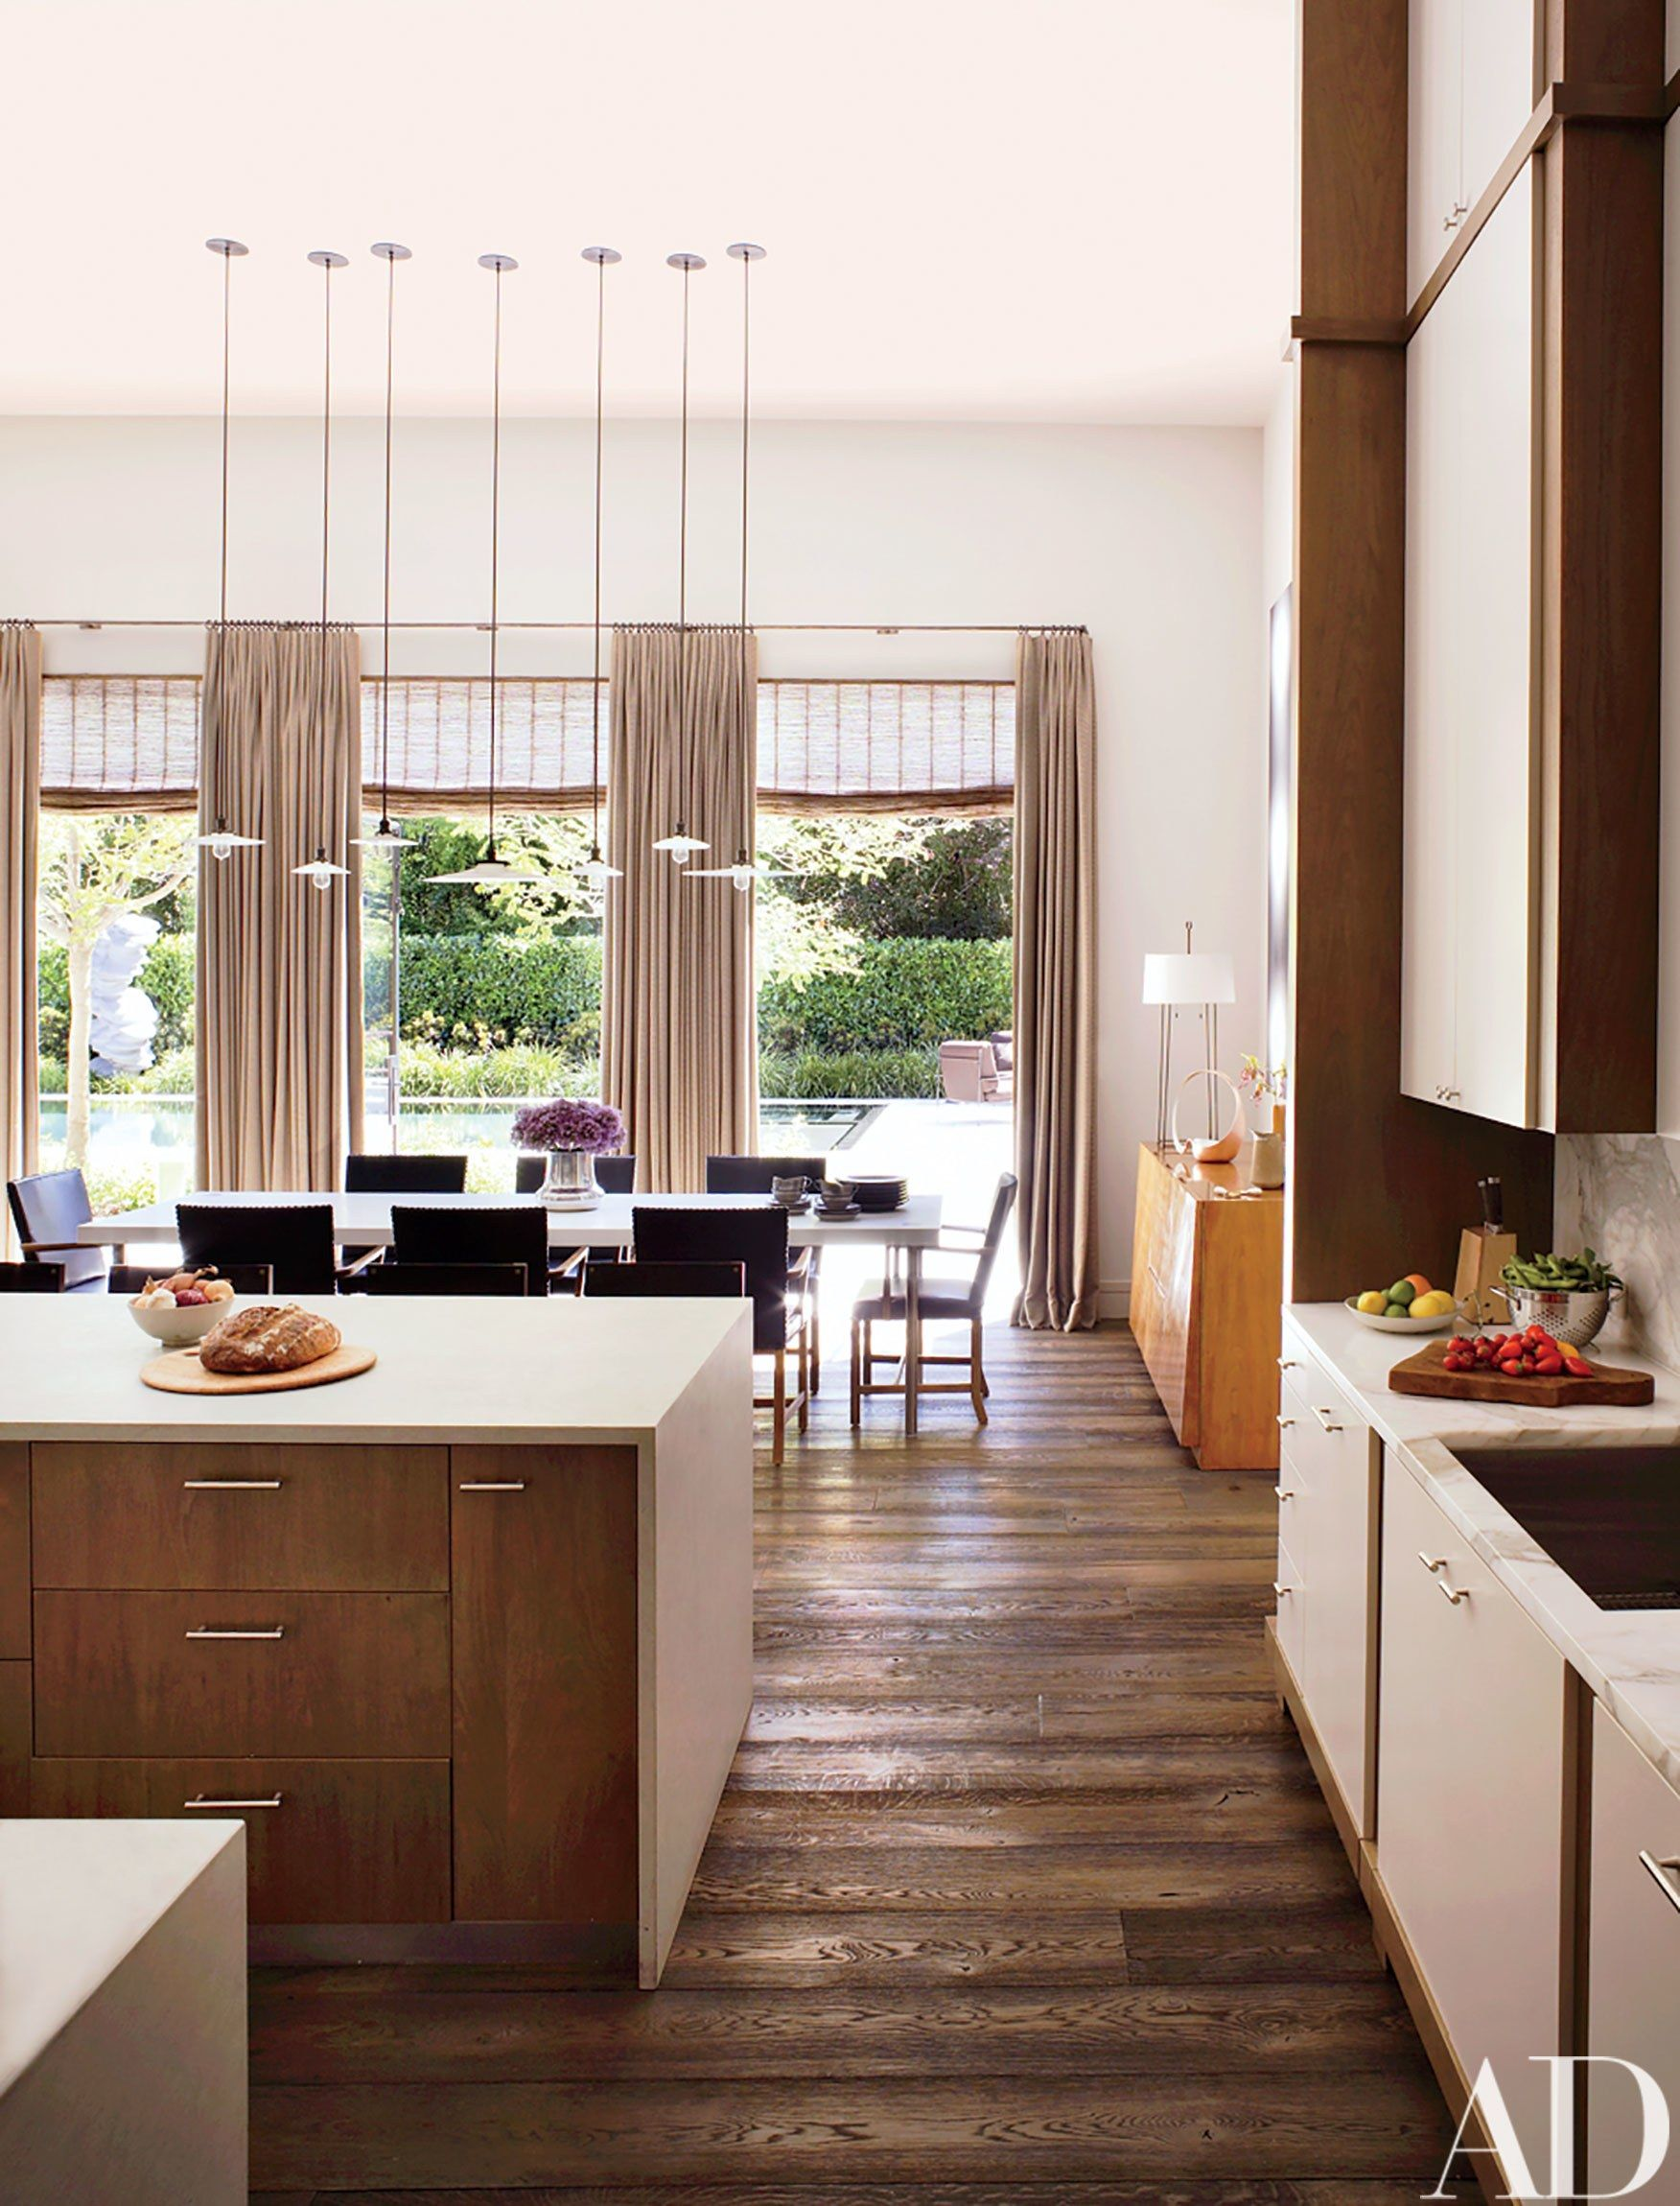 Modern Kitchen Images Architectural Digest An Avantgarde California Residence Becomes An Artfilled Retreat